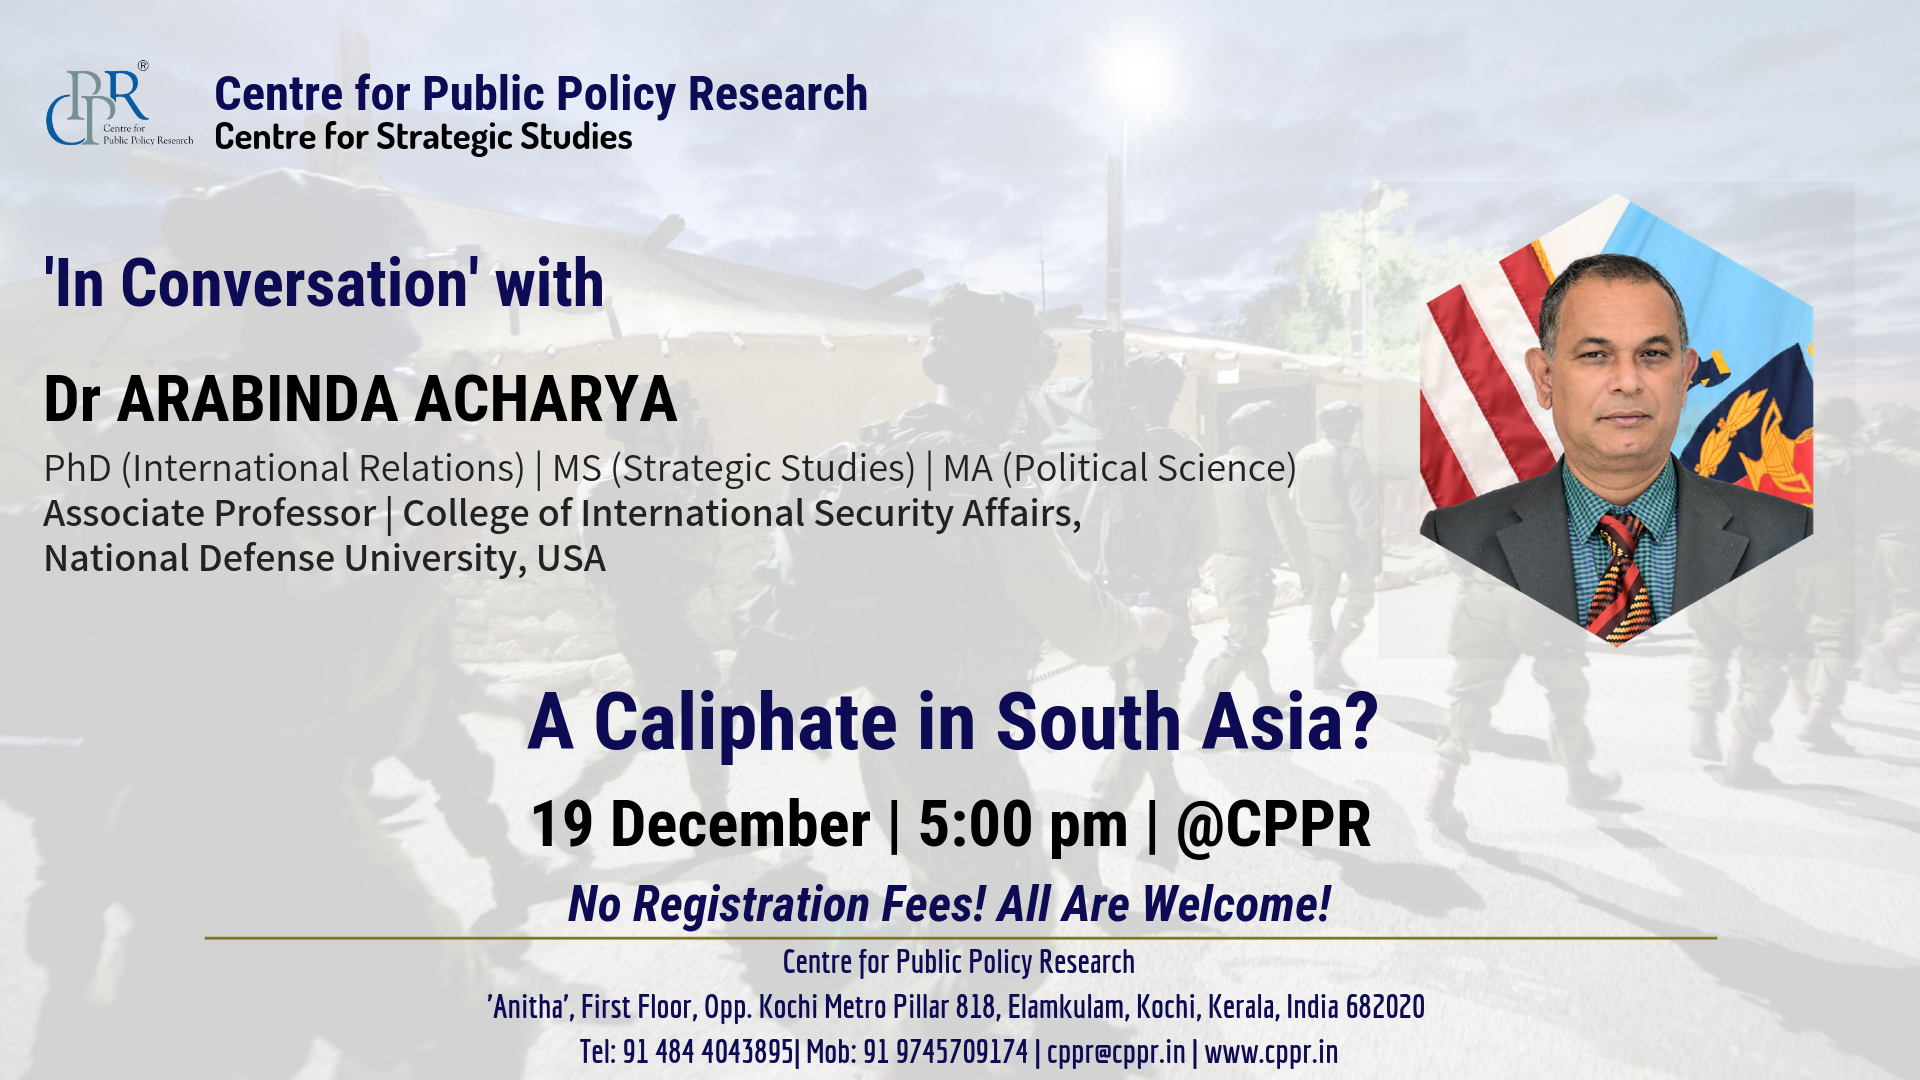 In Conversation with Dr  Arabinda Acharya - Centre for Public Policy